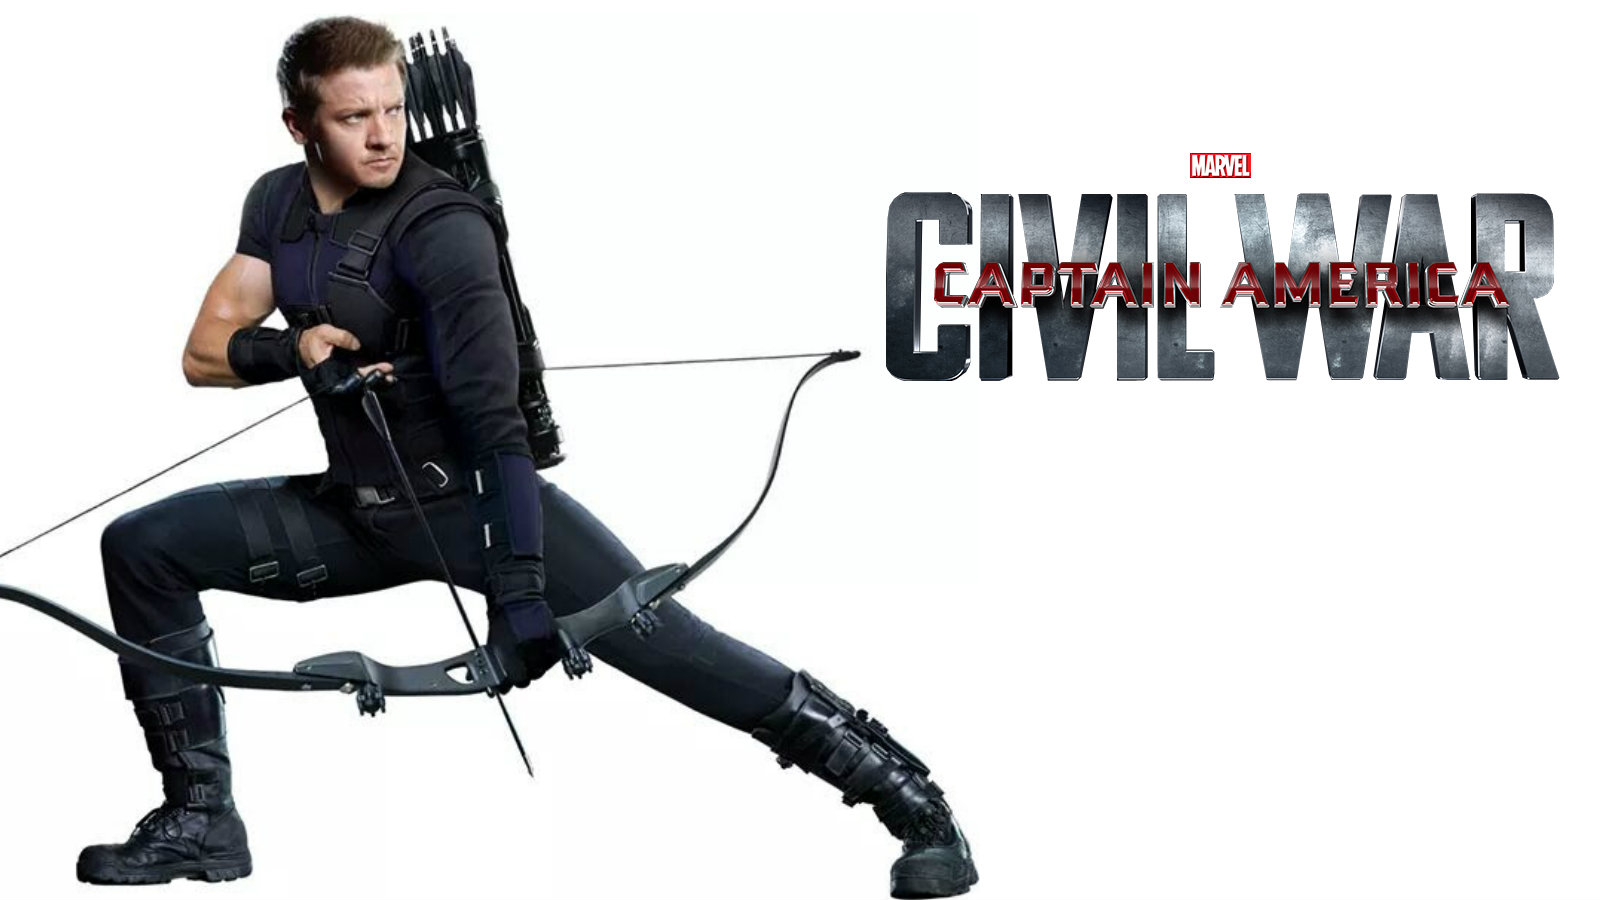 Hawkeye Captain America Civil War 39434674 1600 900